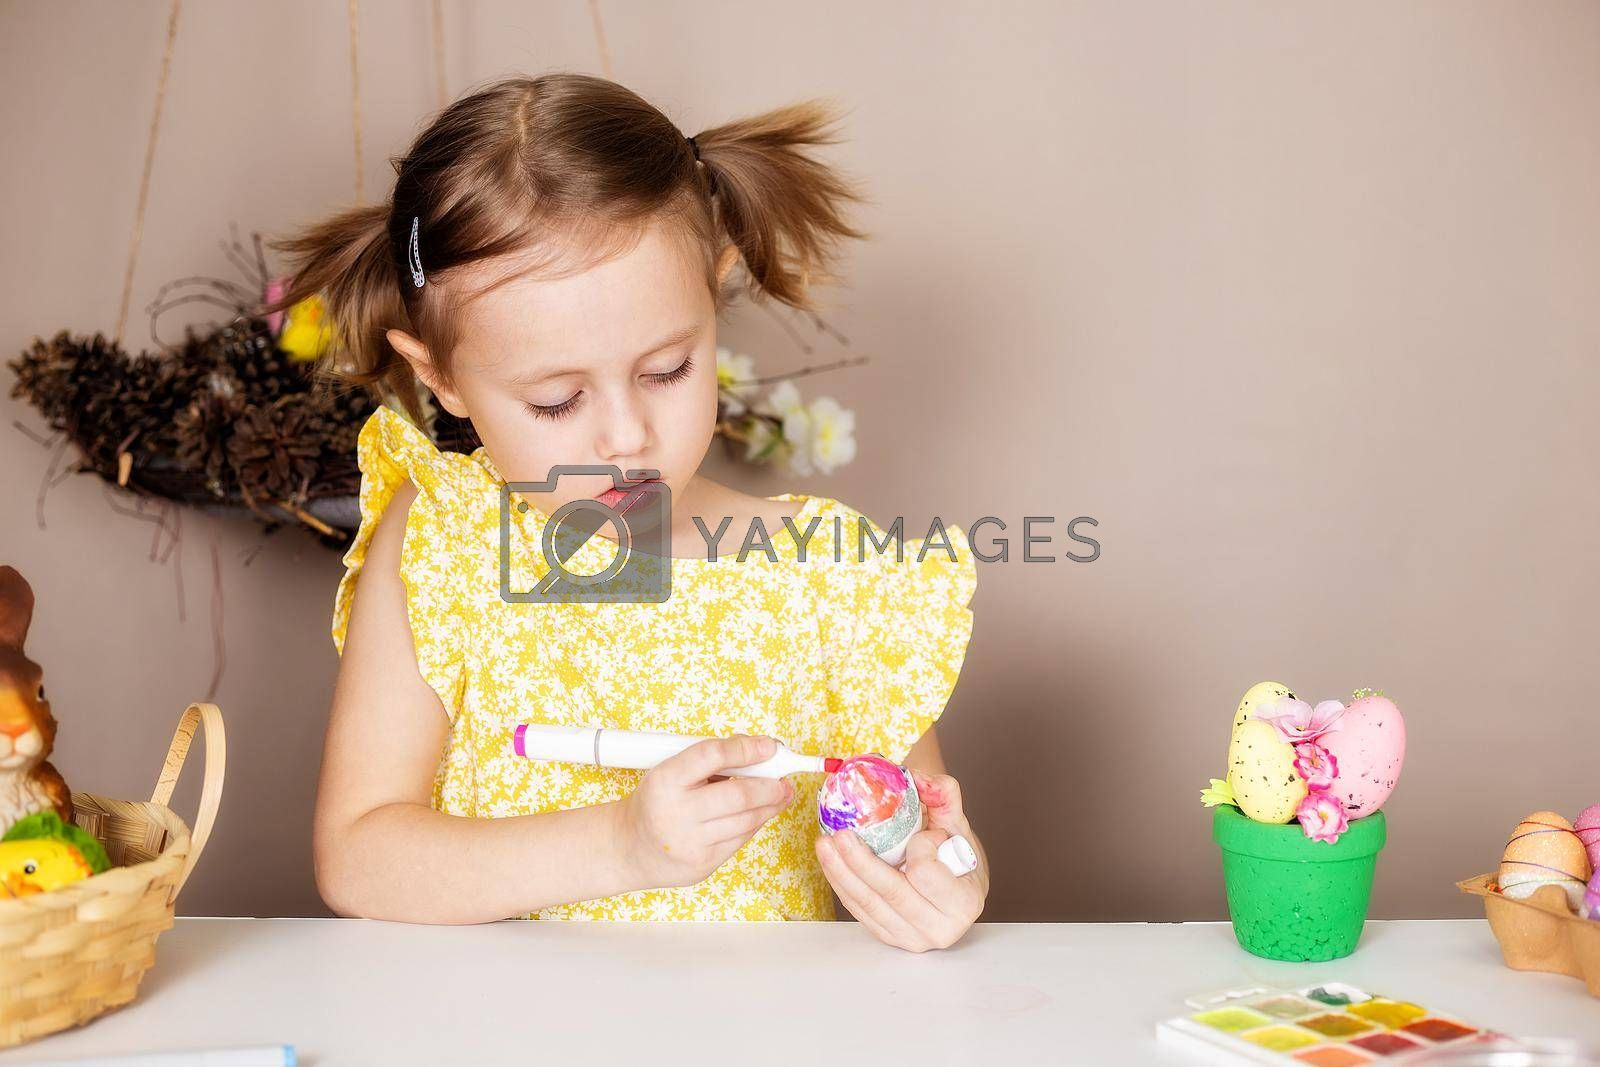 Small Caucasian girl of 5 years old paints eggs with special markers for Easter. by galinasharapova